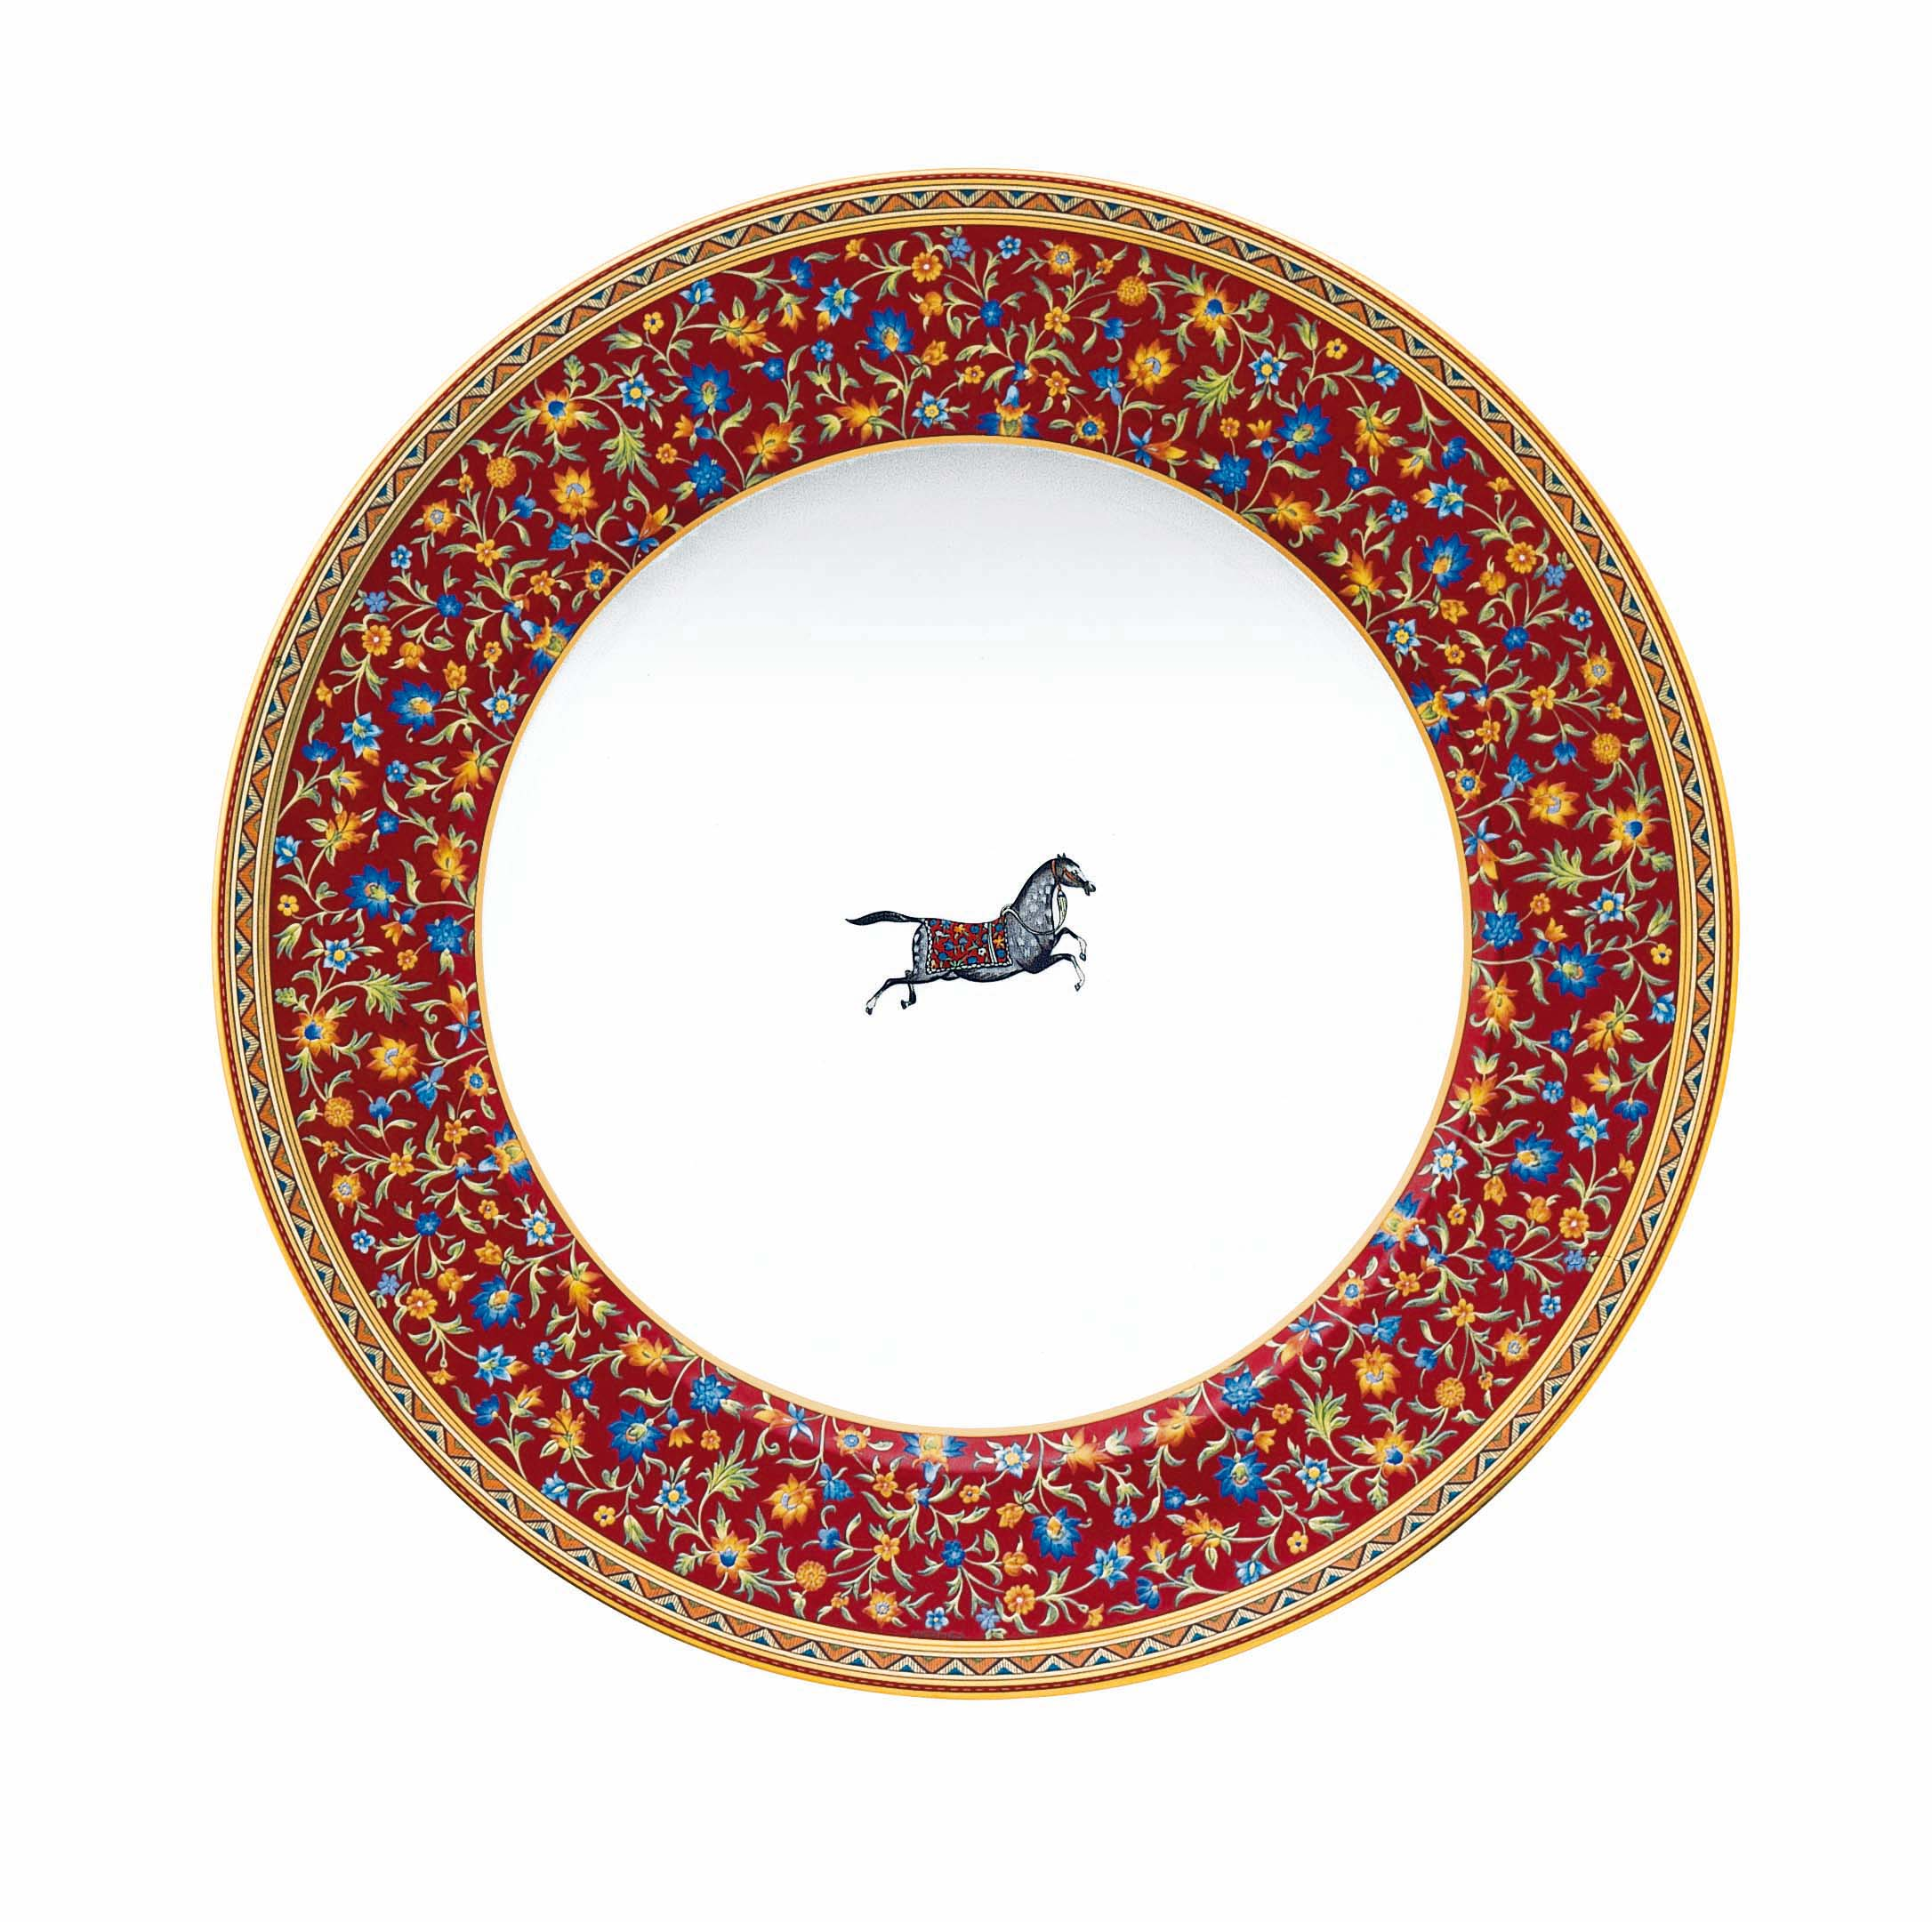 Hermes - Cheval d'Orient - American Dinner Plate